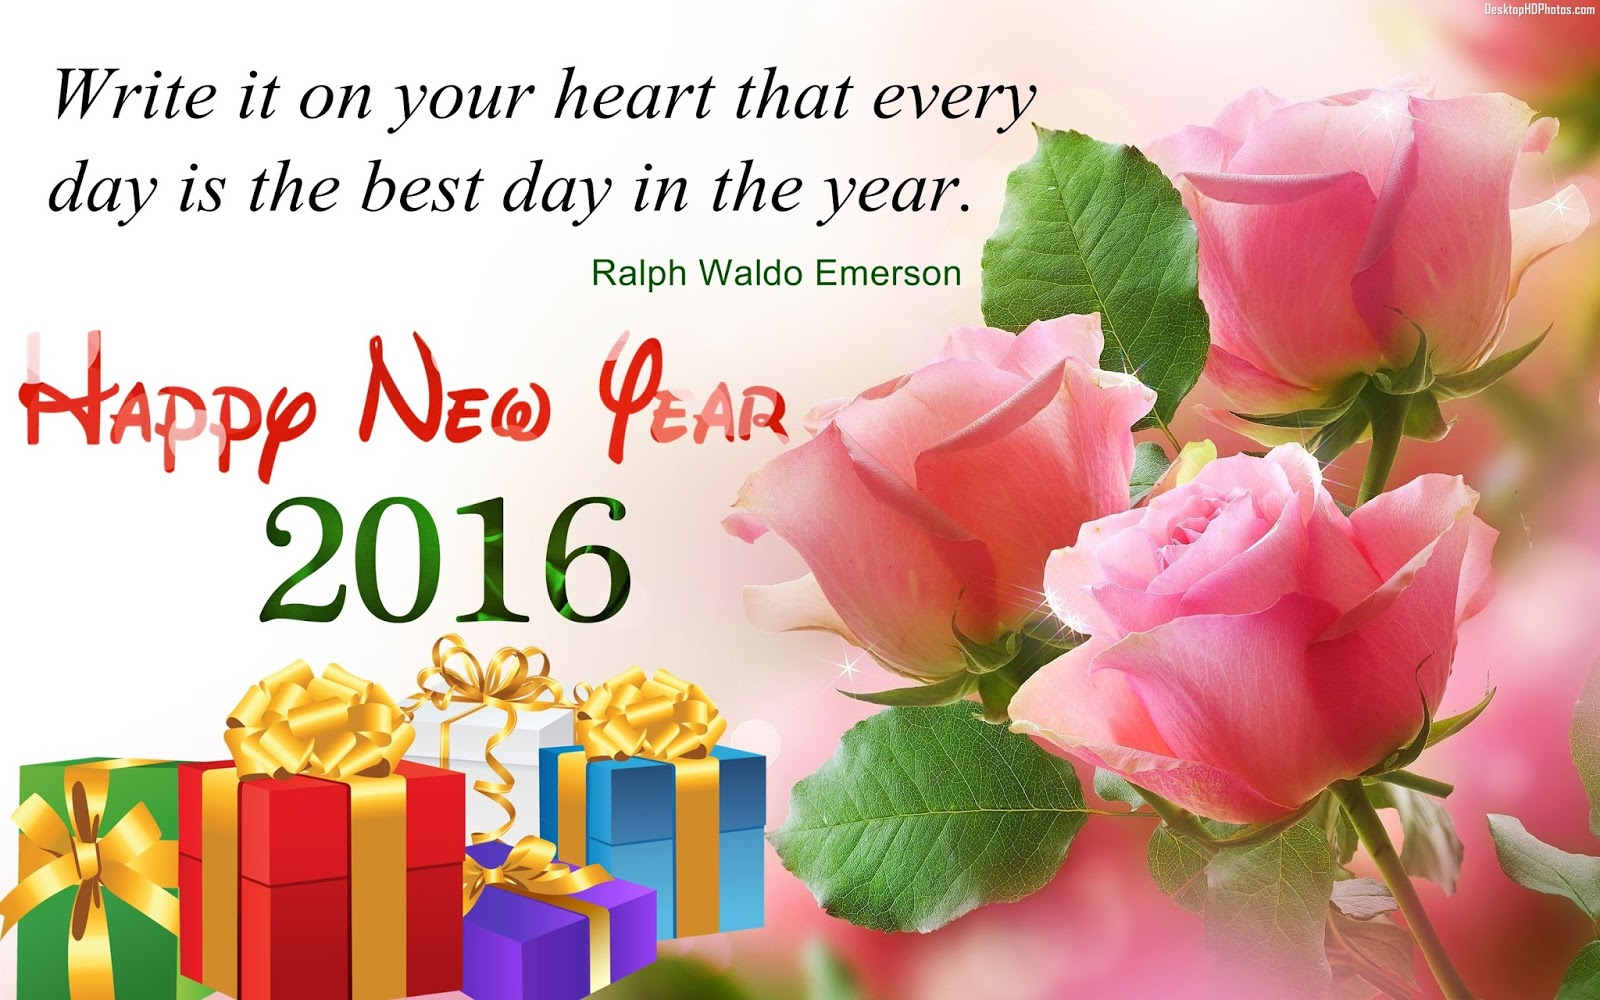 2016 Happy New Year Sms Quotes Wishes 2016 In English